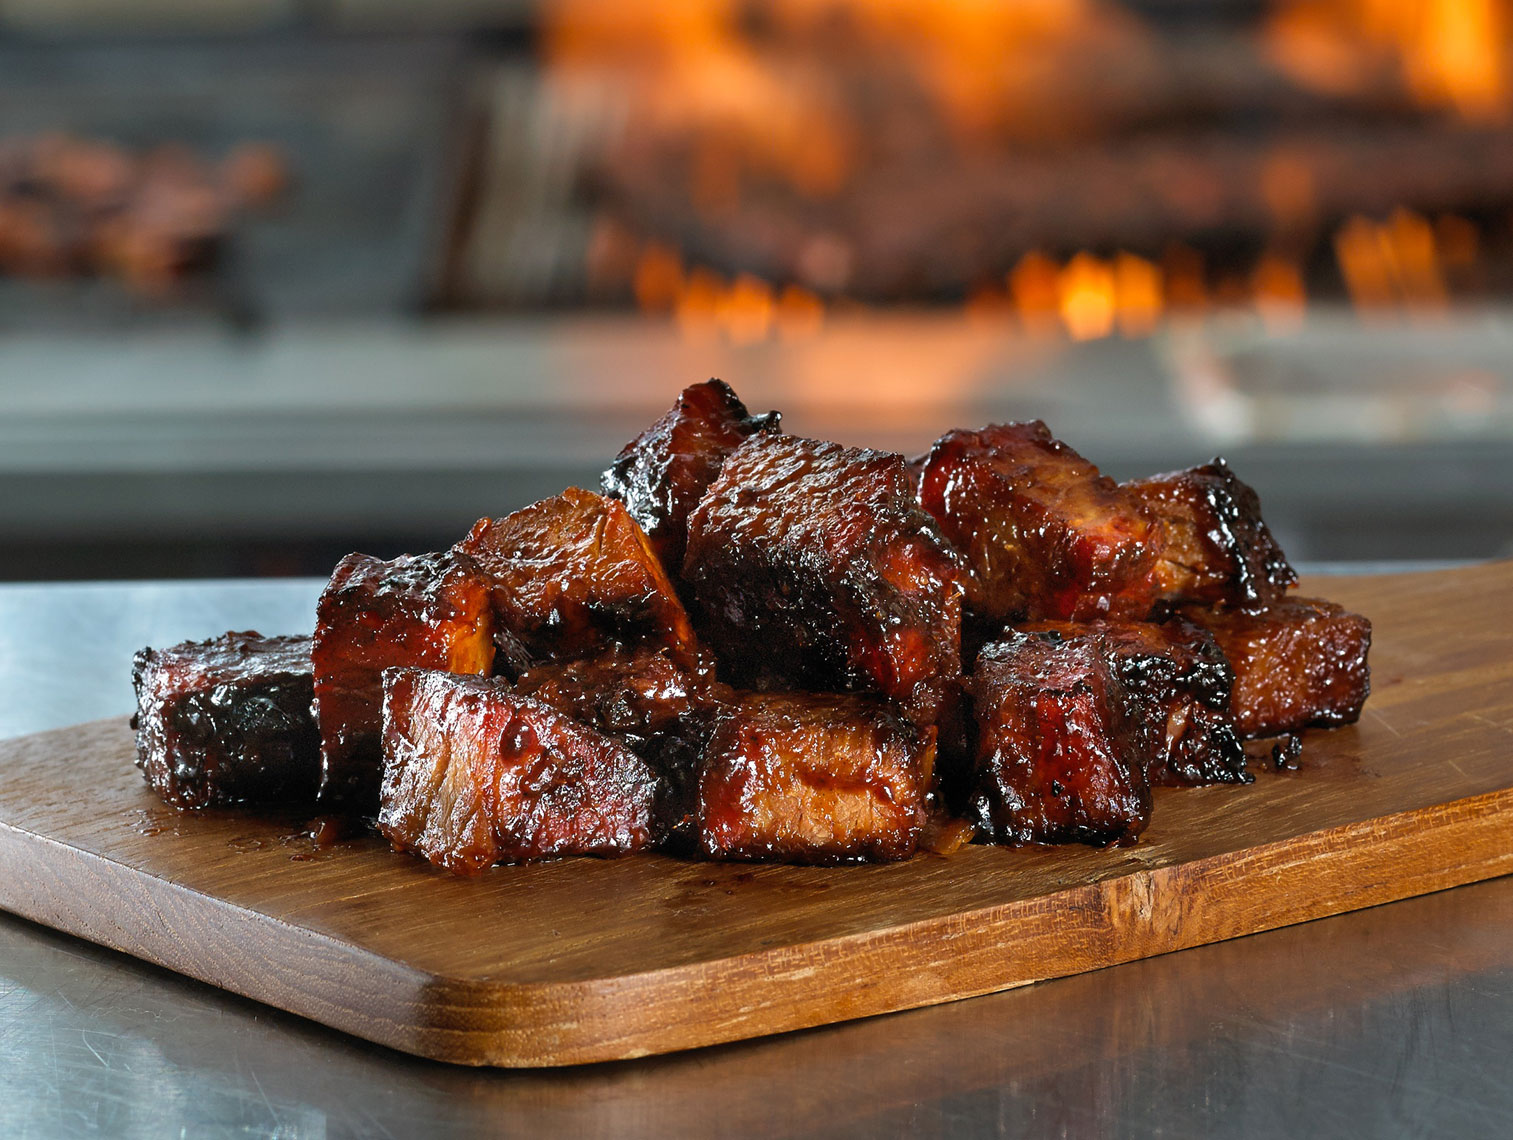 BBQ rib meat/wooden cutting board/food photography